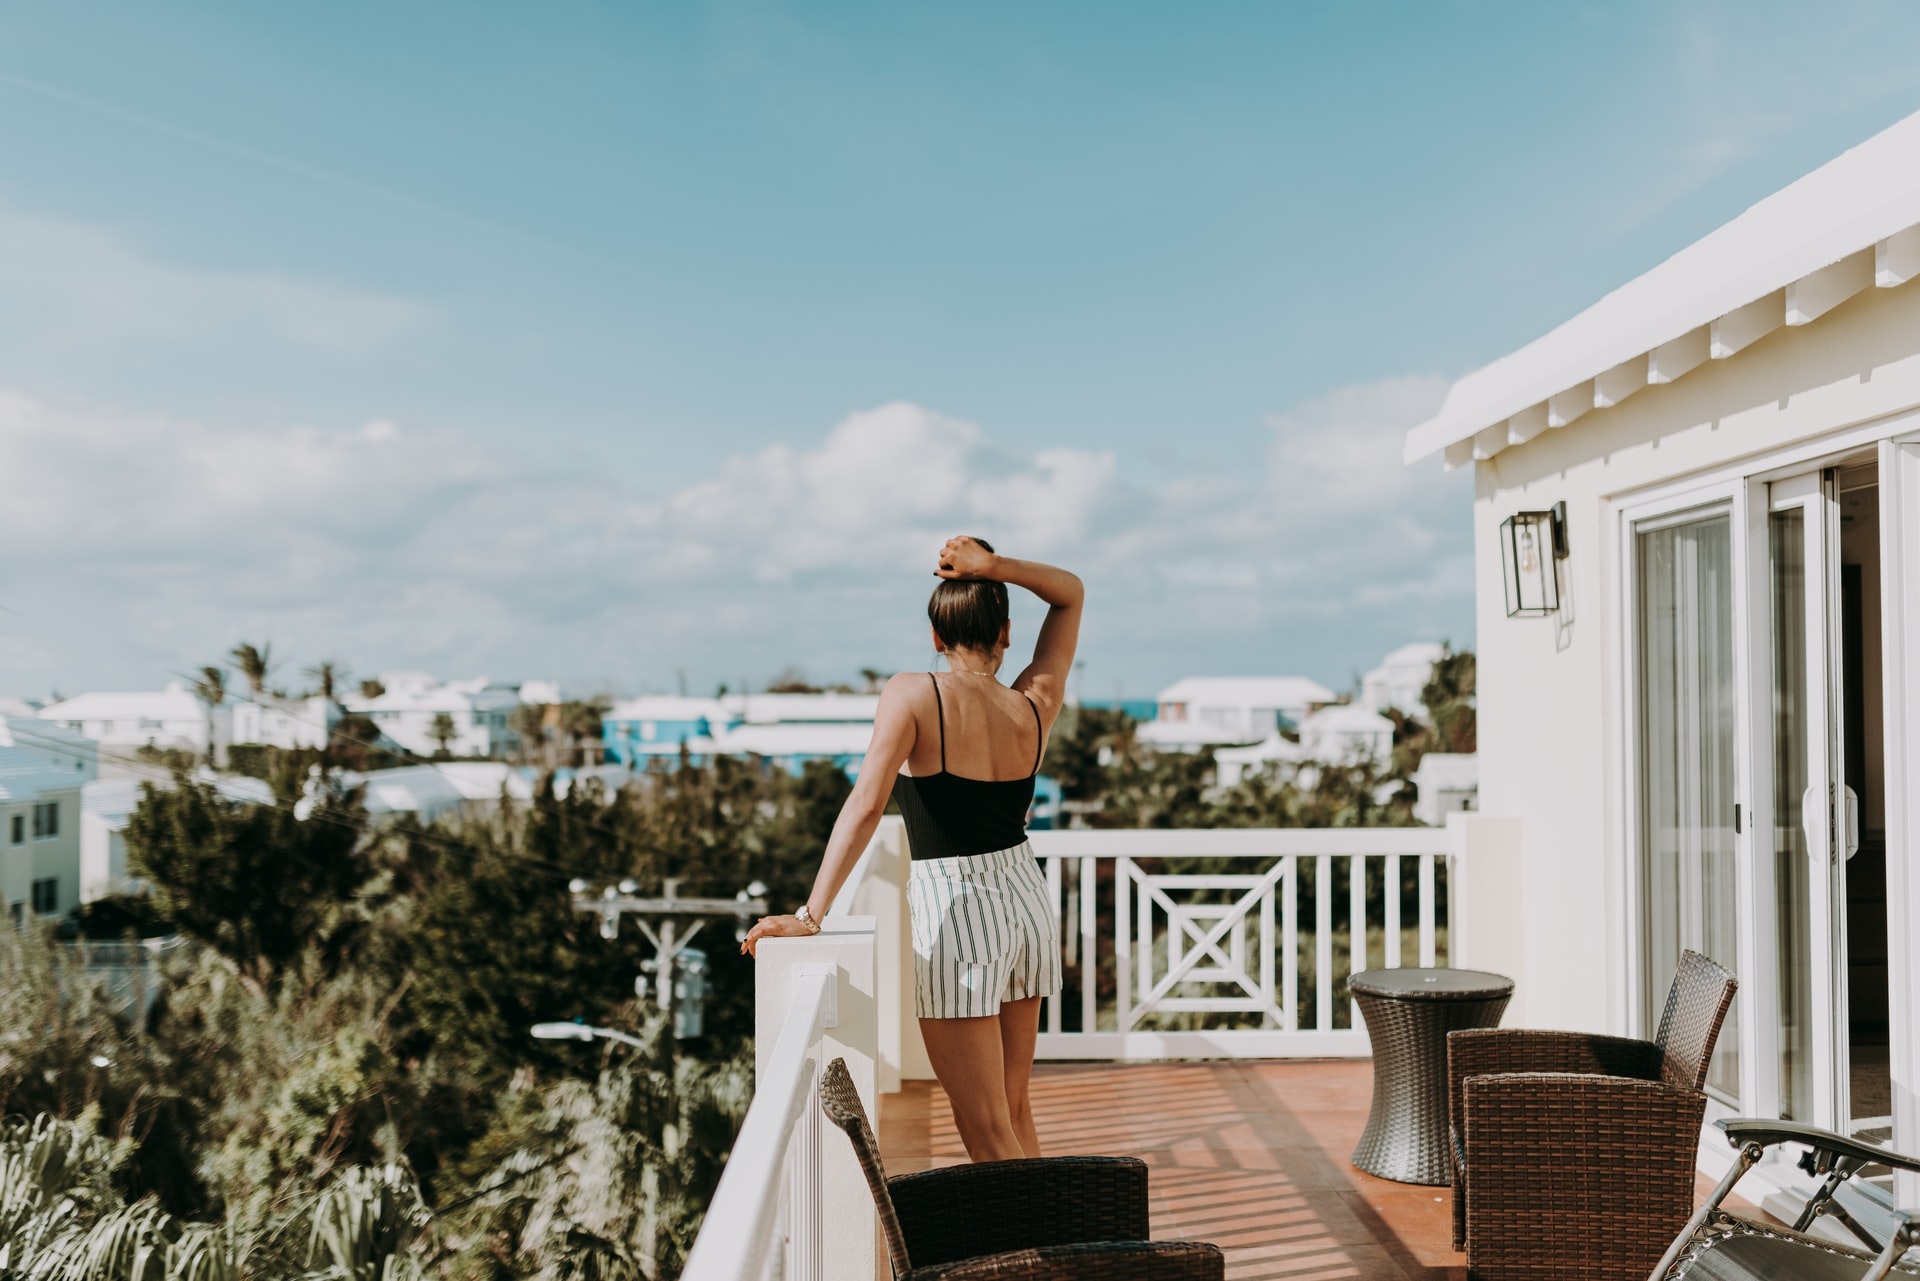 A woman's back as she stands on her rooftop patio overlooking the roofs of her neighbors homes in Bermuda